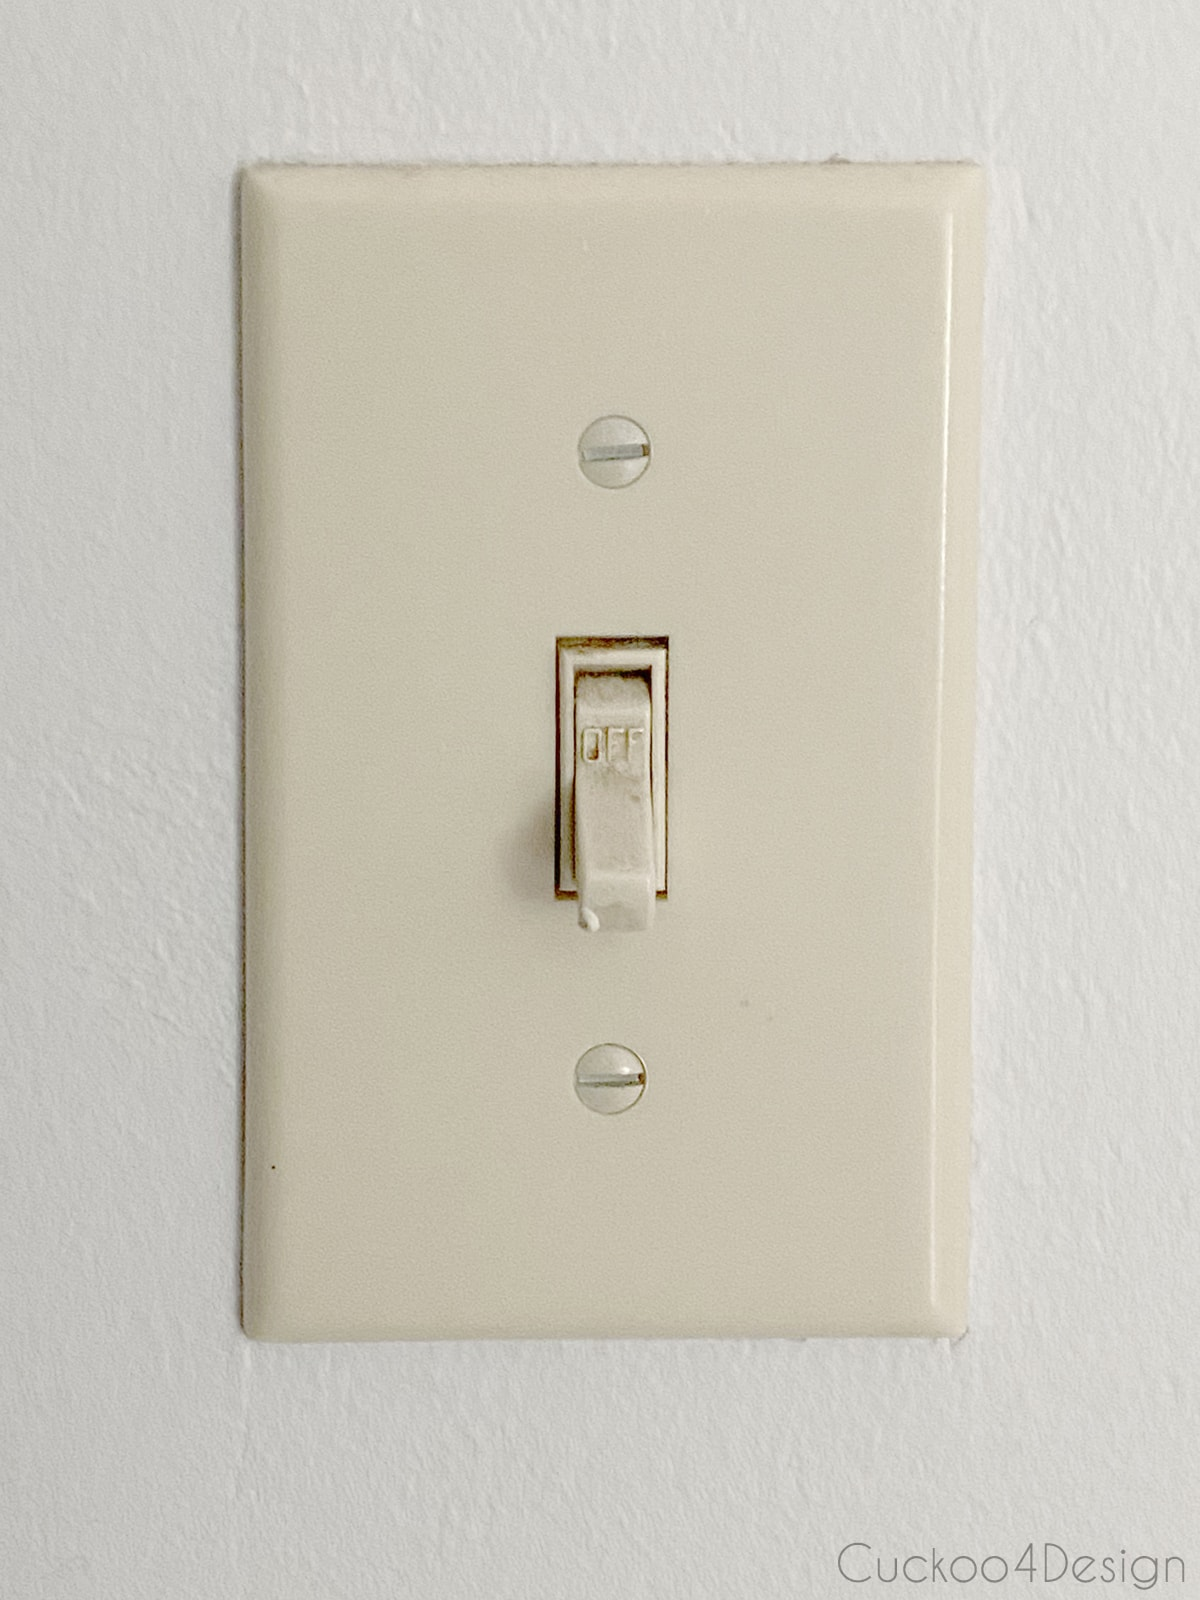 yucky old tan light switch cover